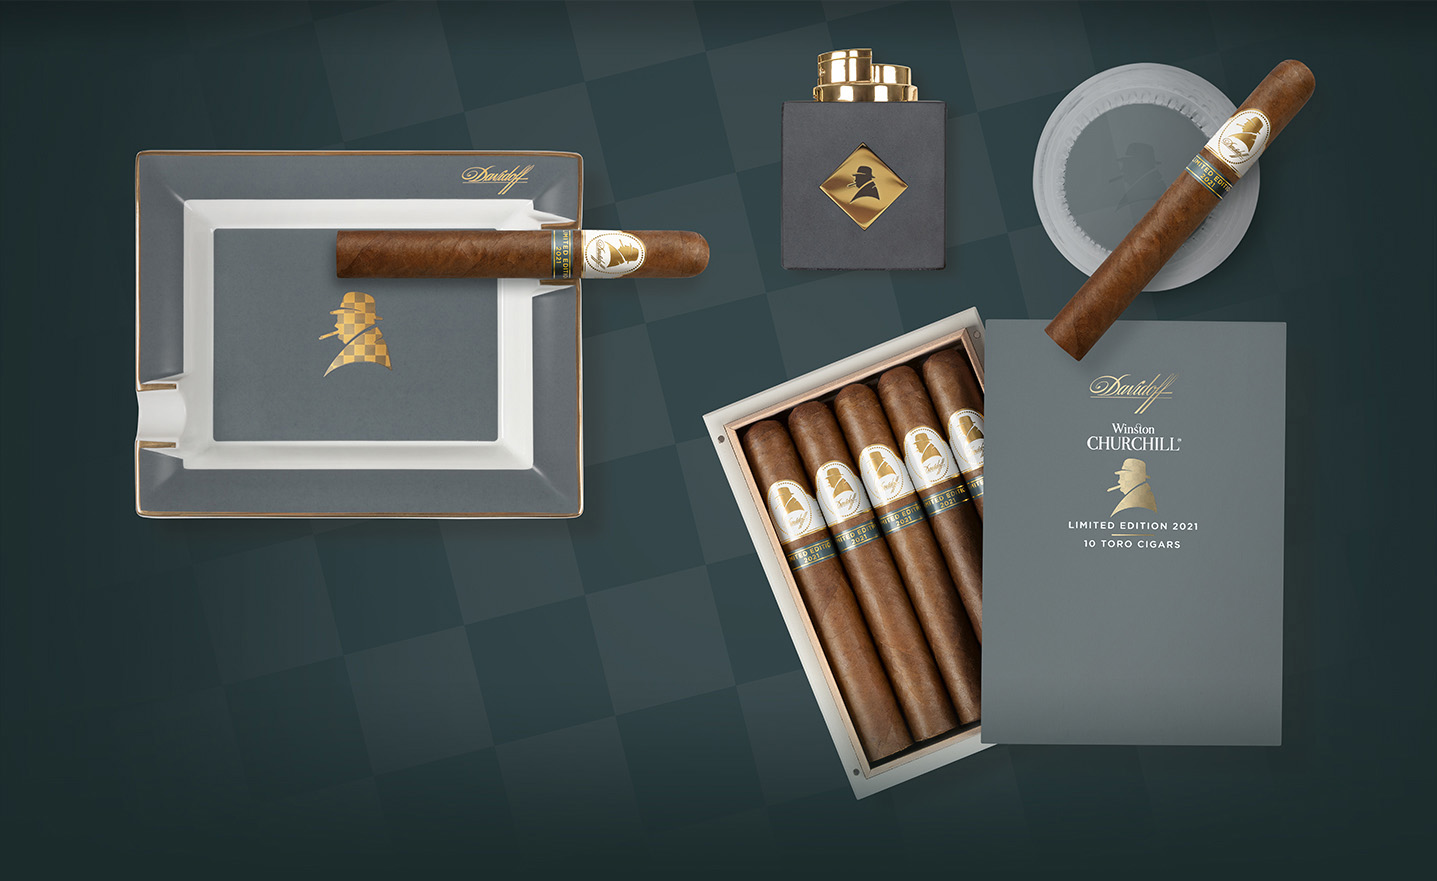 The Davidoff Winston Churchill Cigar Collection 2021 includes a Toro Cigar, an Ashtray and a Table Lighter